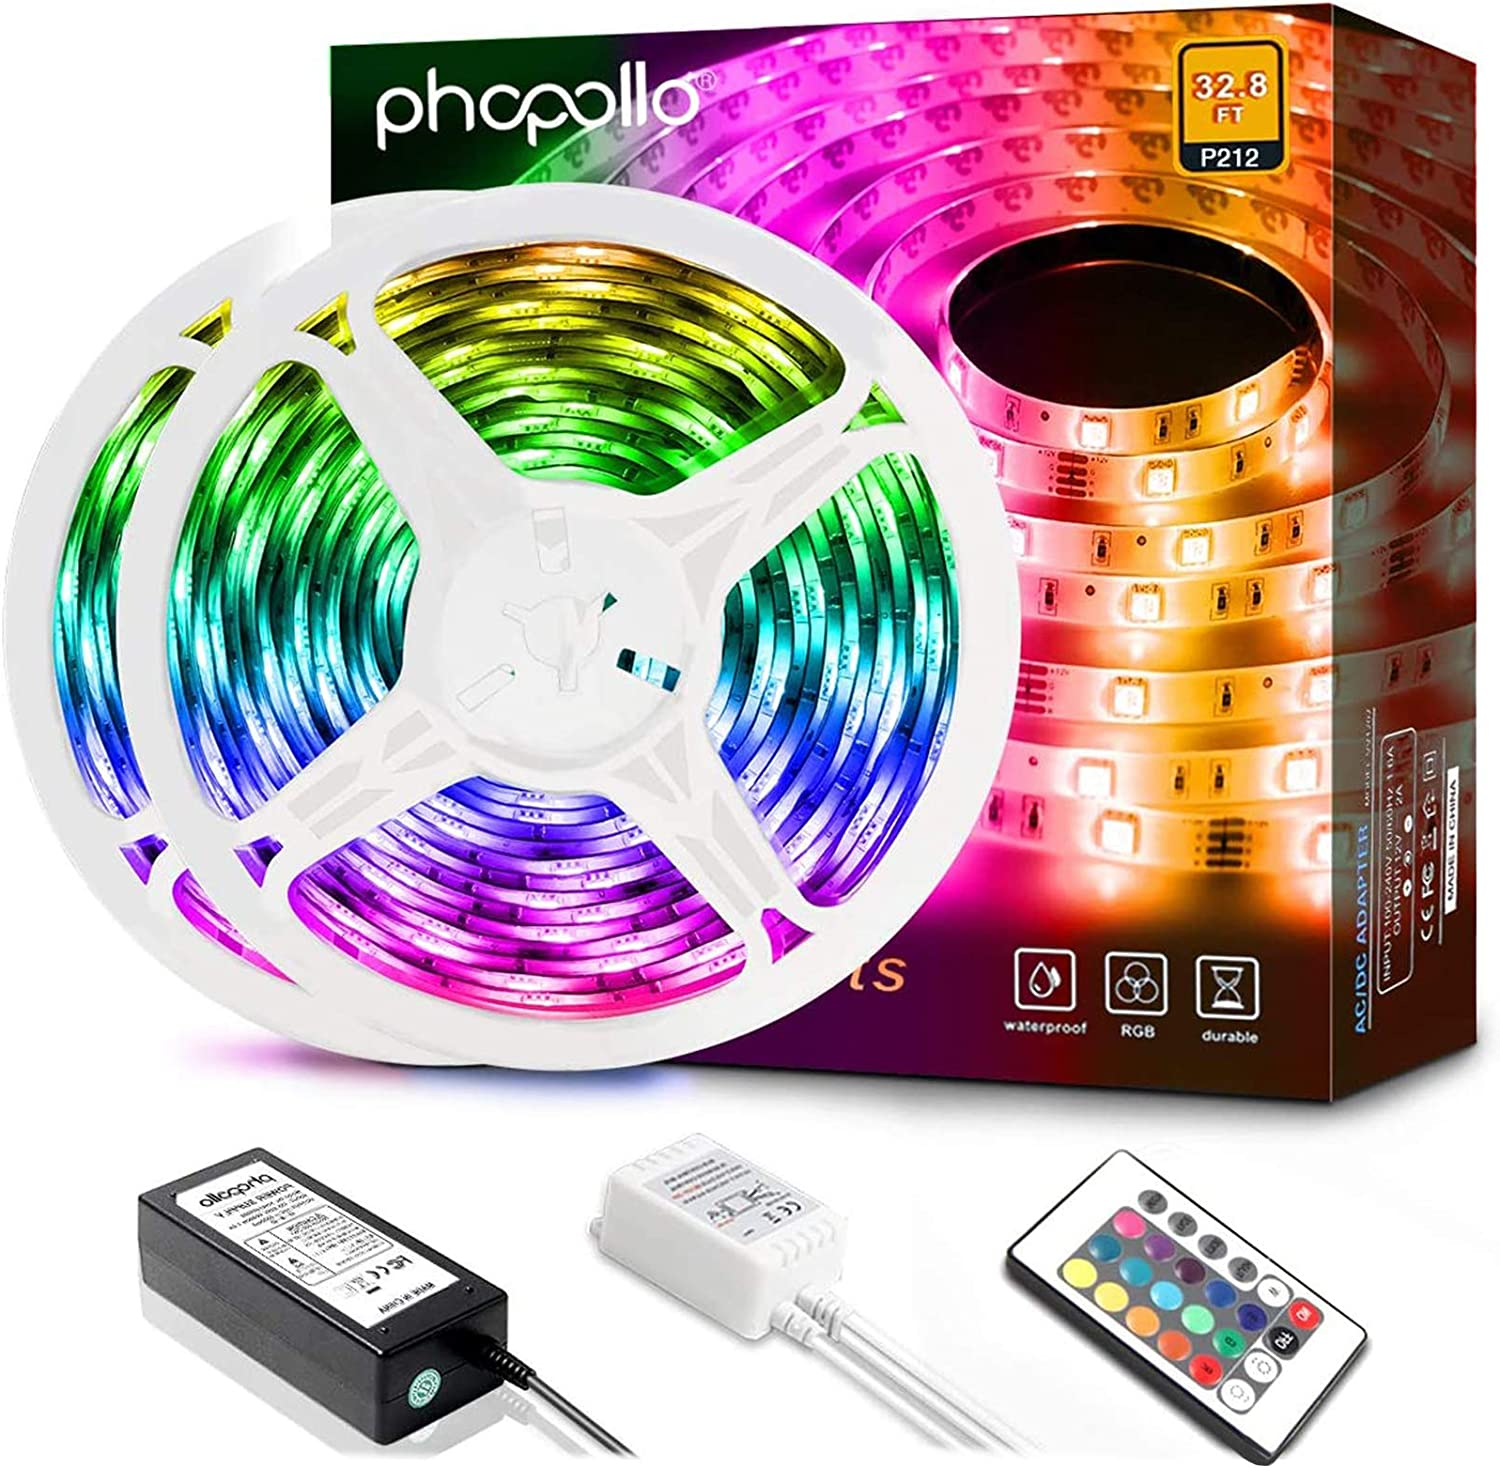 2021 autumn and winter new Phopollo Led Strip Lights 32.8ft Direct stock discount LEDs Flexible 600 L Waterproof